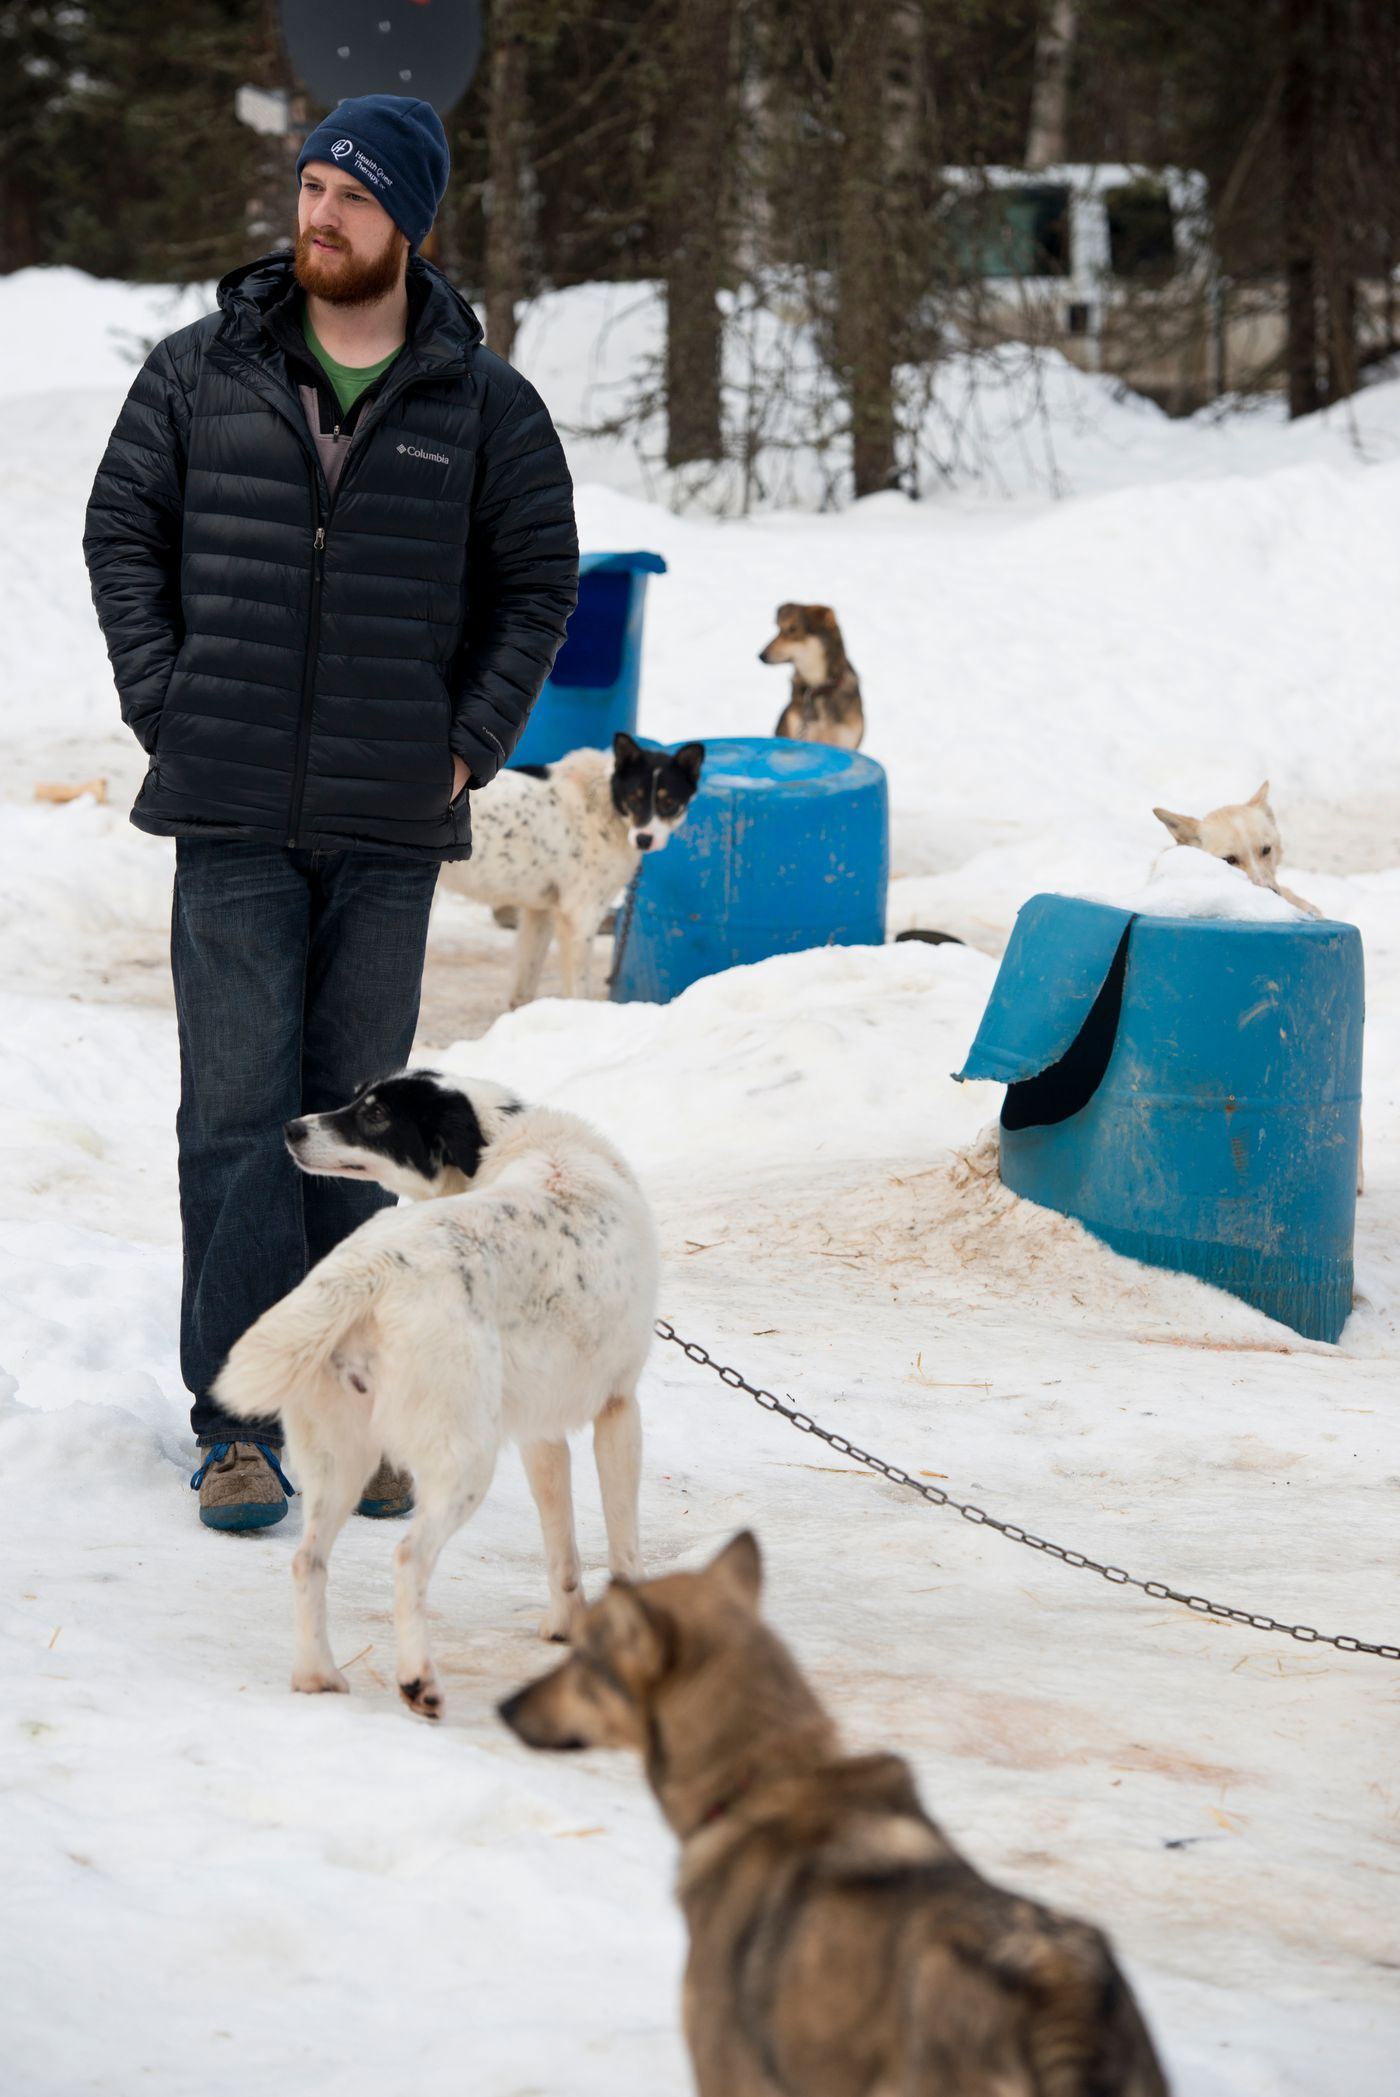 Iditarod musher Wade Marrs has improved his position substantially in  recent years. He finished in